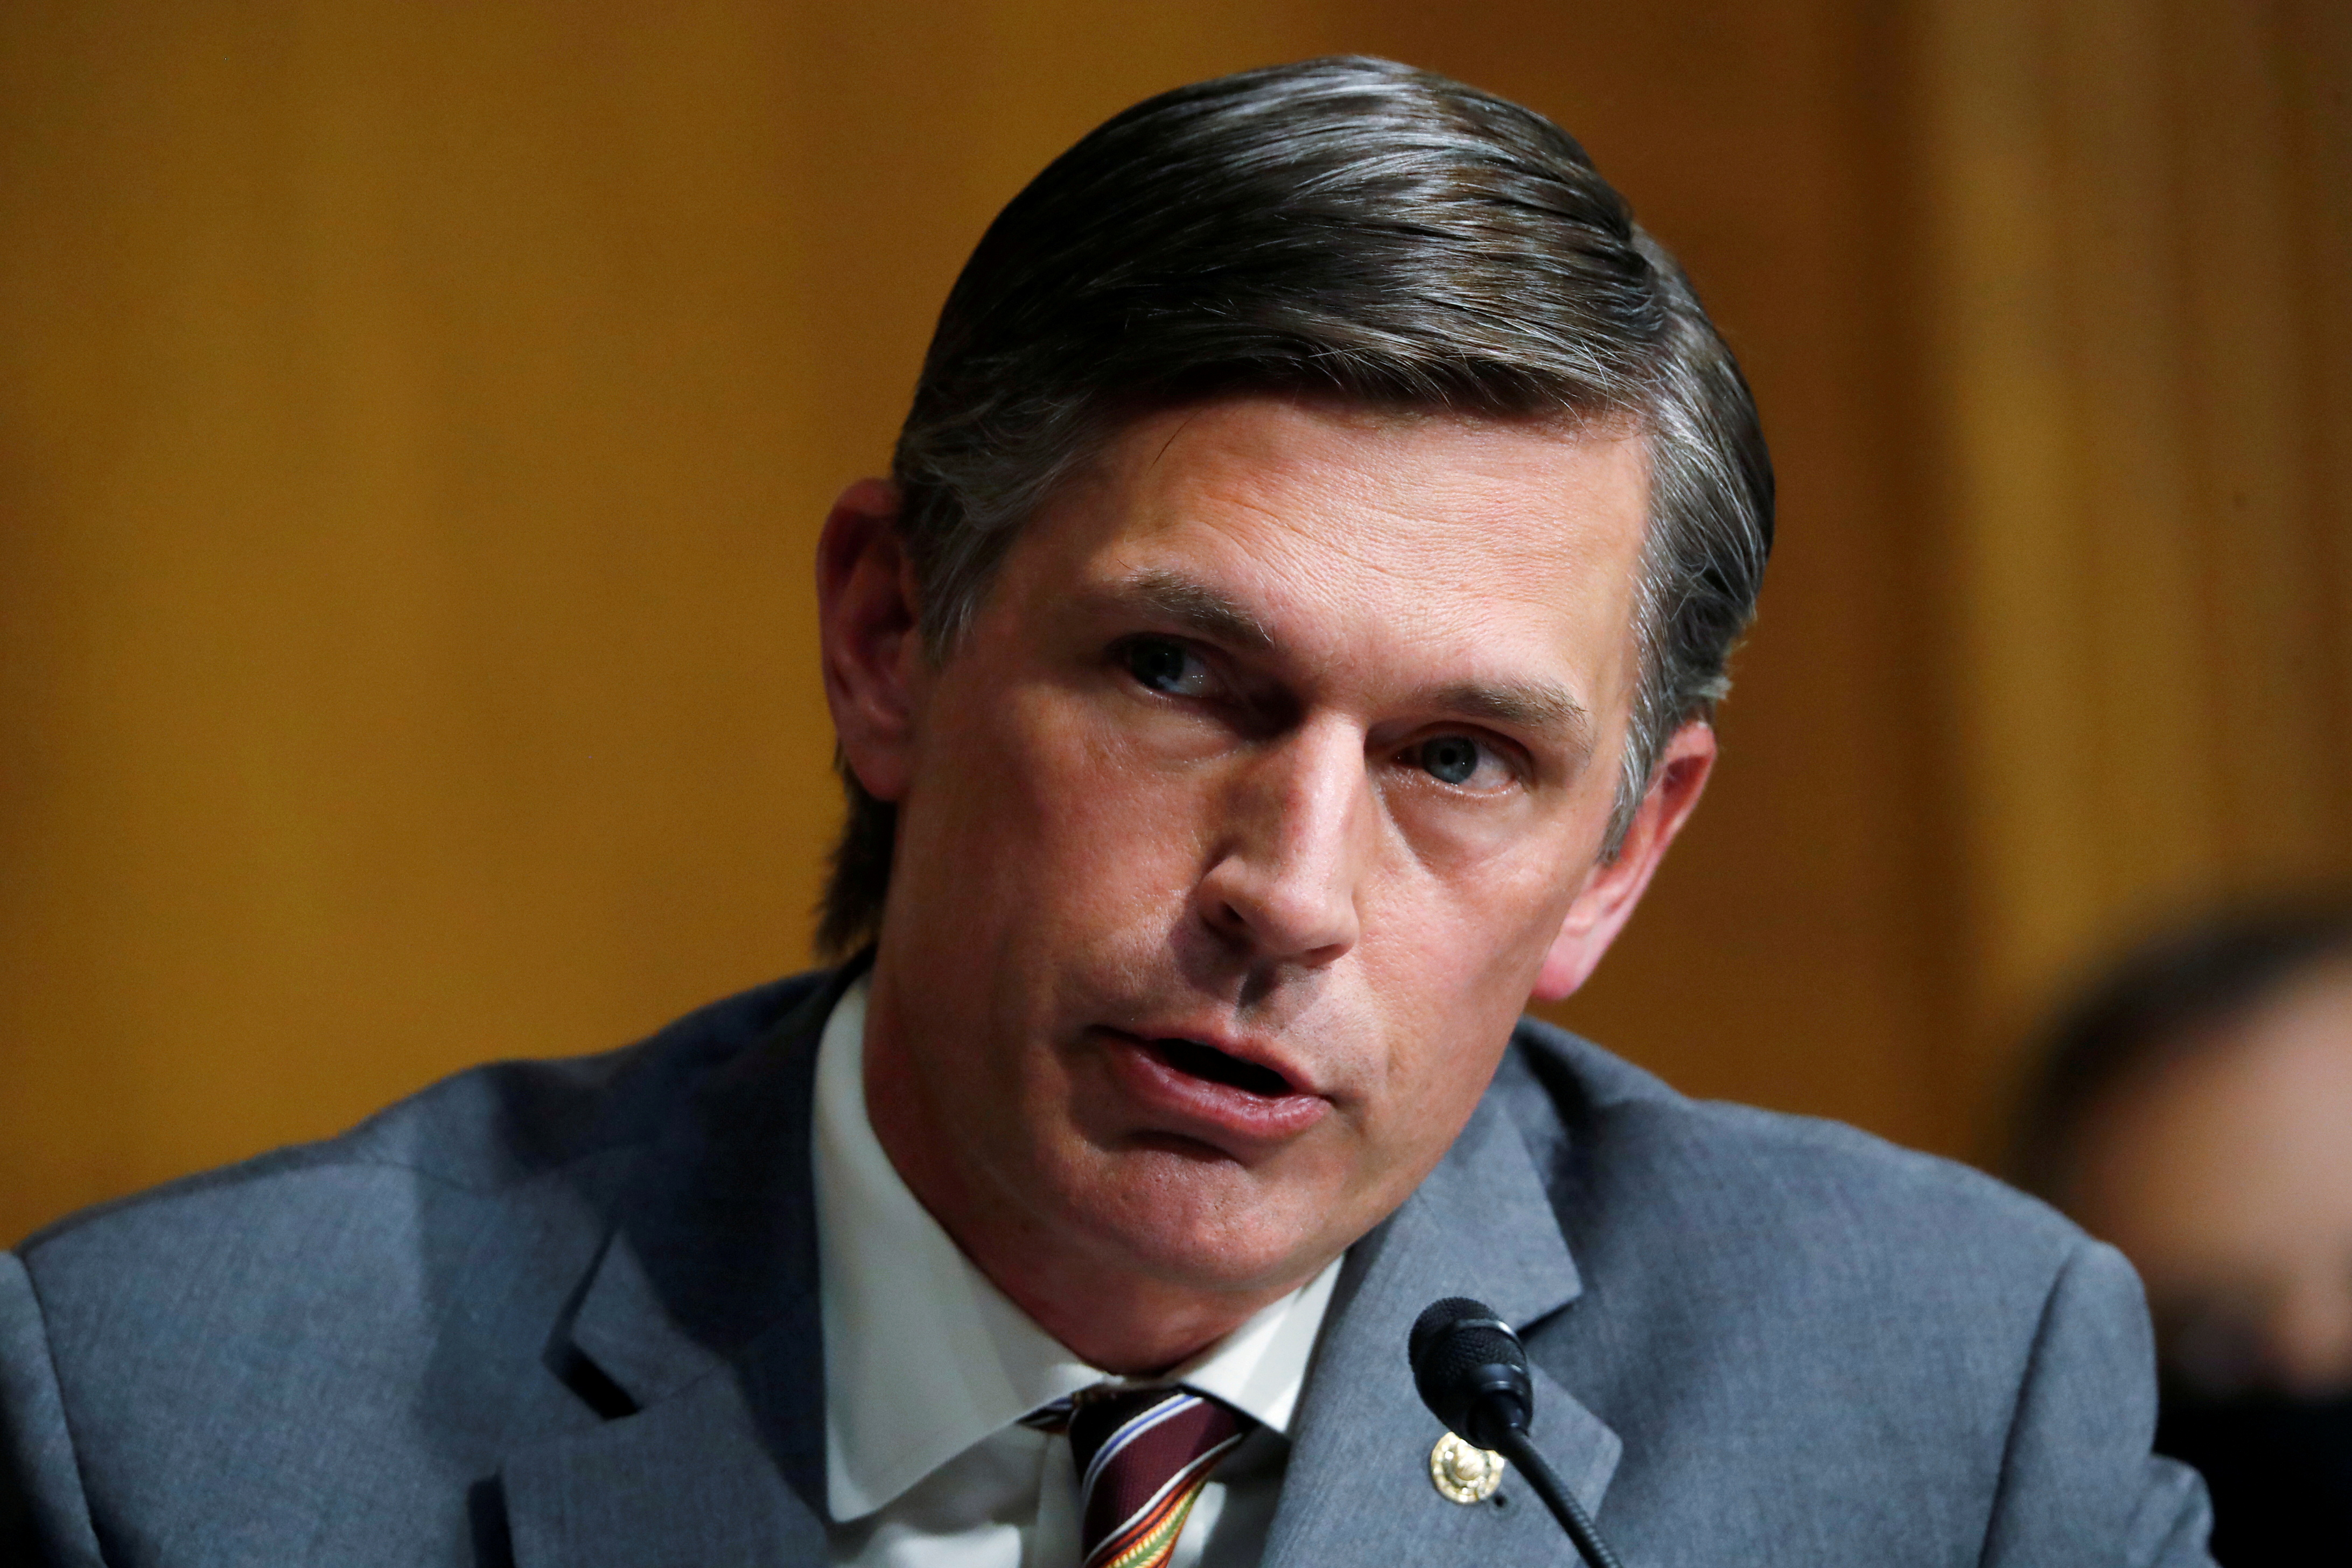 U.S.  Sen. Martin Heinrich (D-NM) speaks during a Senate Intelligence Committee nomination hearing for Rep. John Ratcliffe (R-TX), on Capitol Hill in Washington, U.S., May 5, 2020. Andrew Harnik/Pool via REUTERS//File Photo